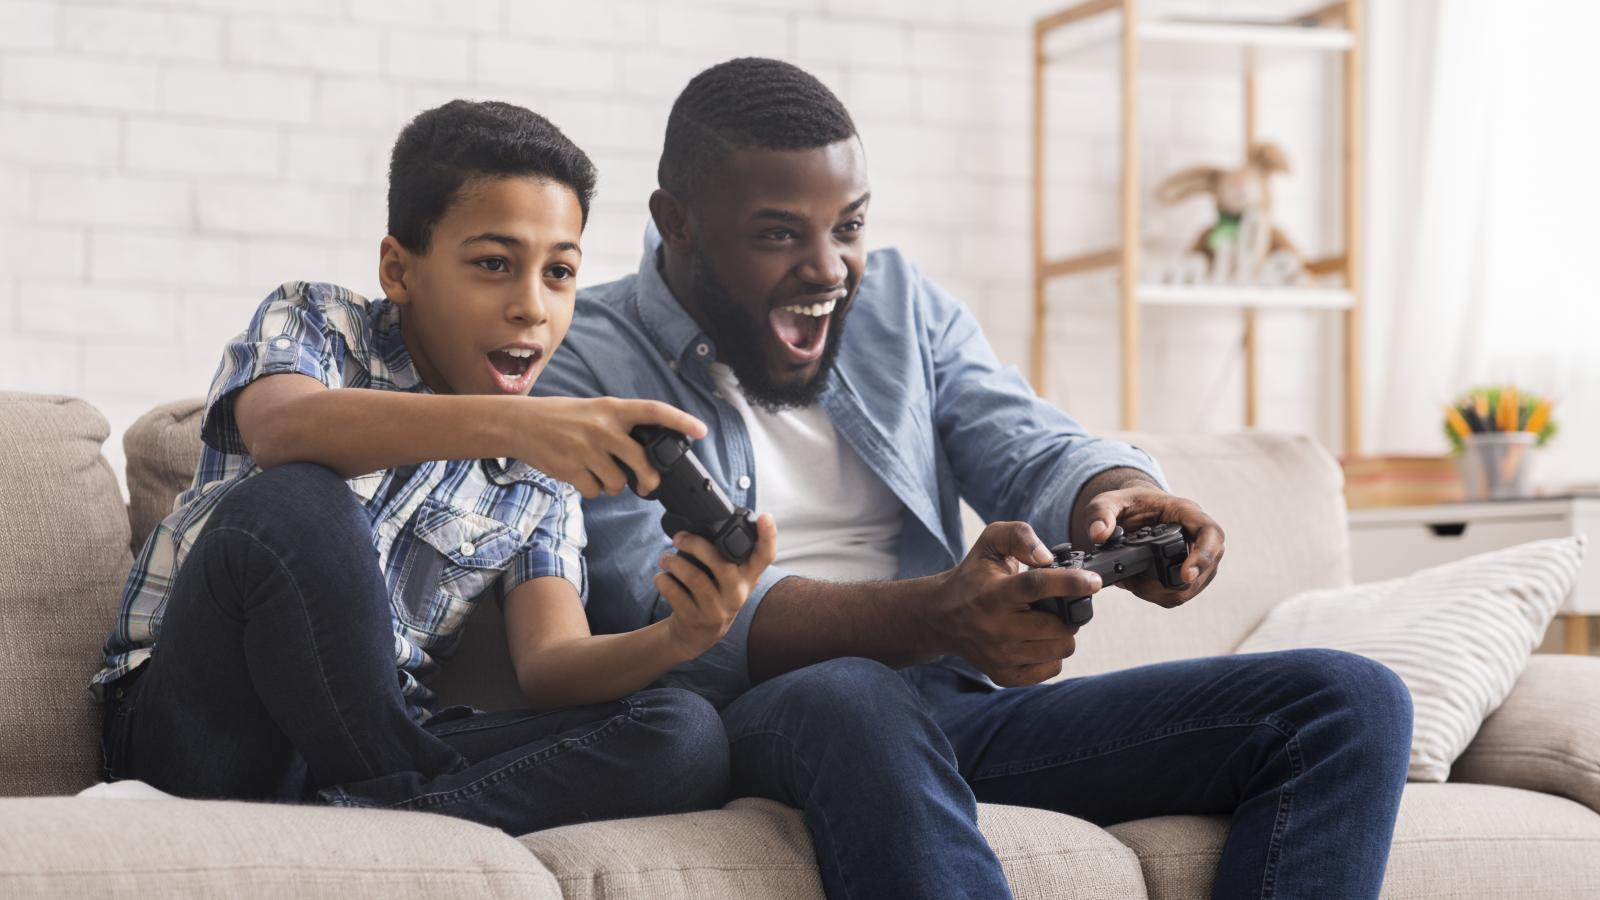 Father and son gaming